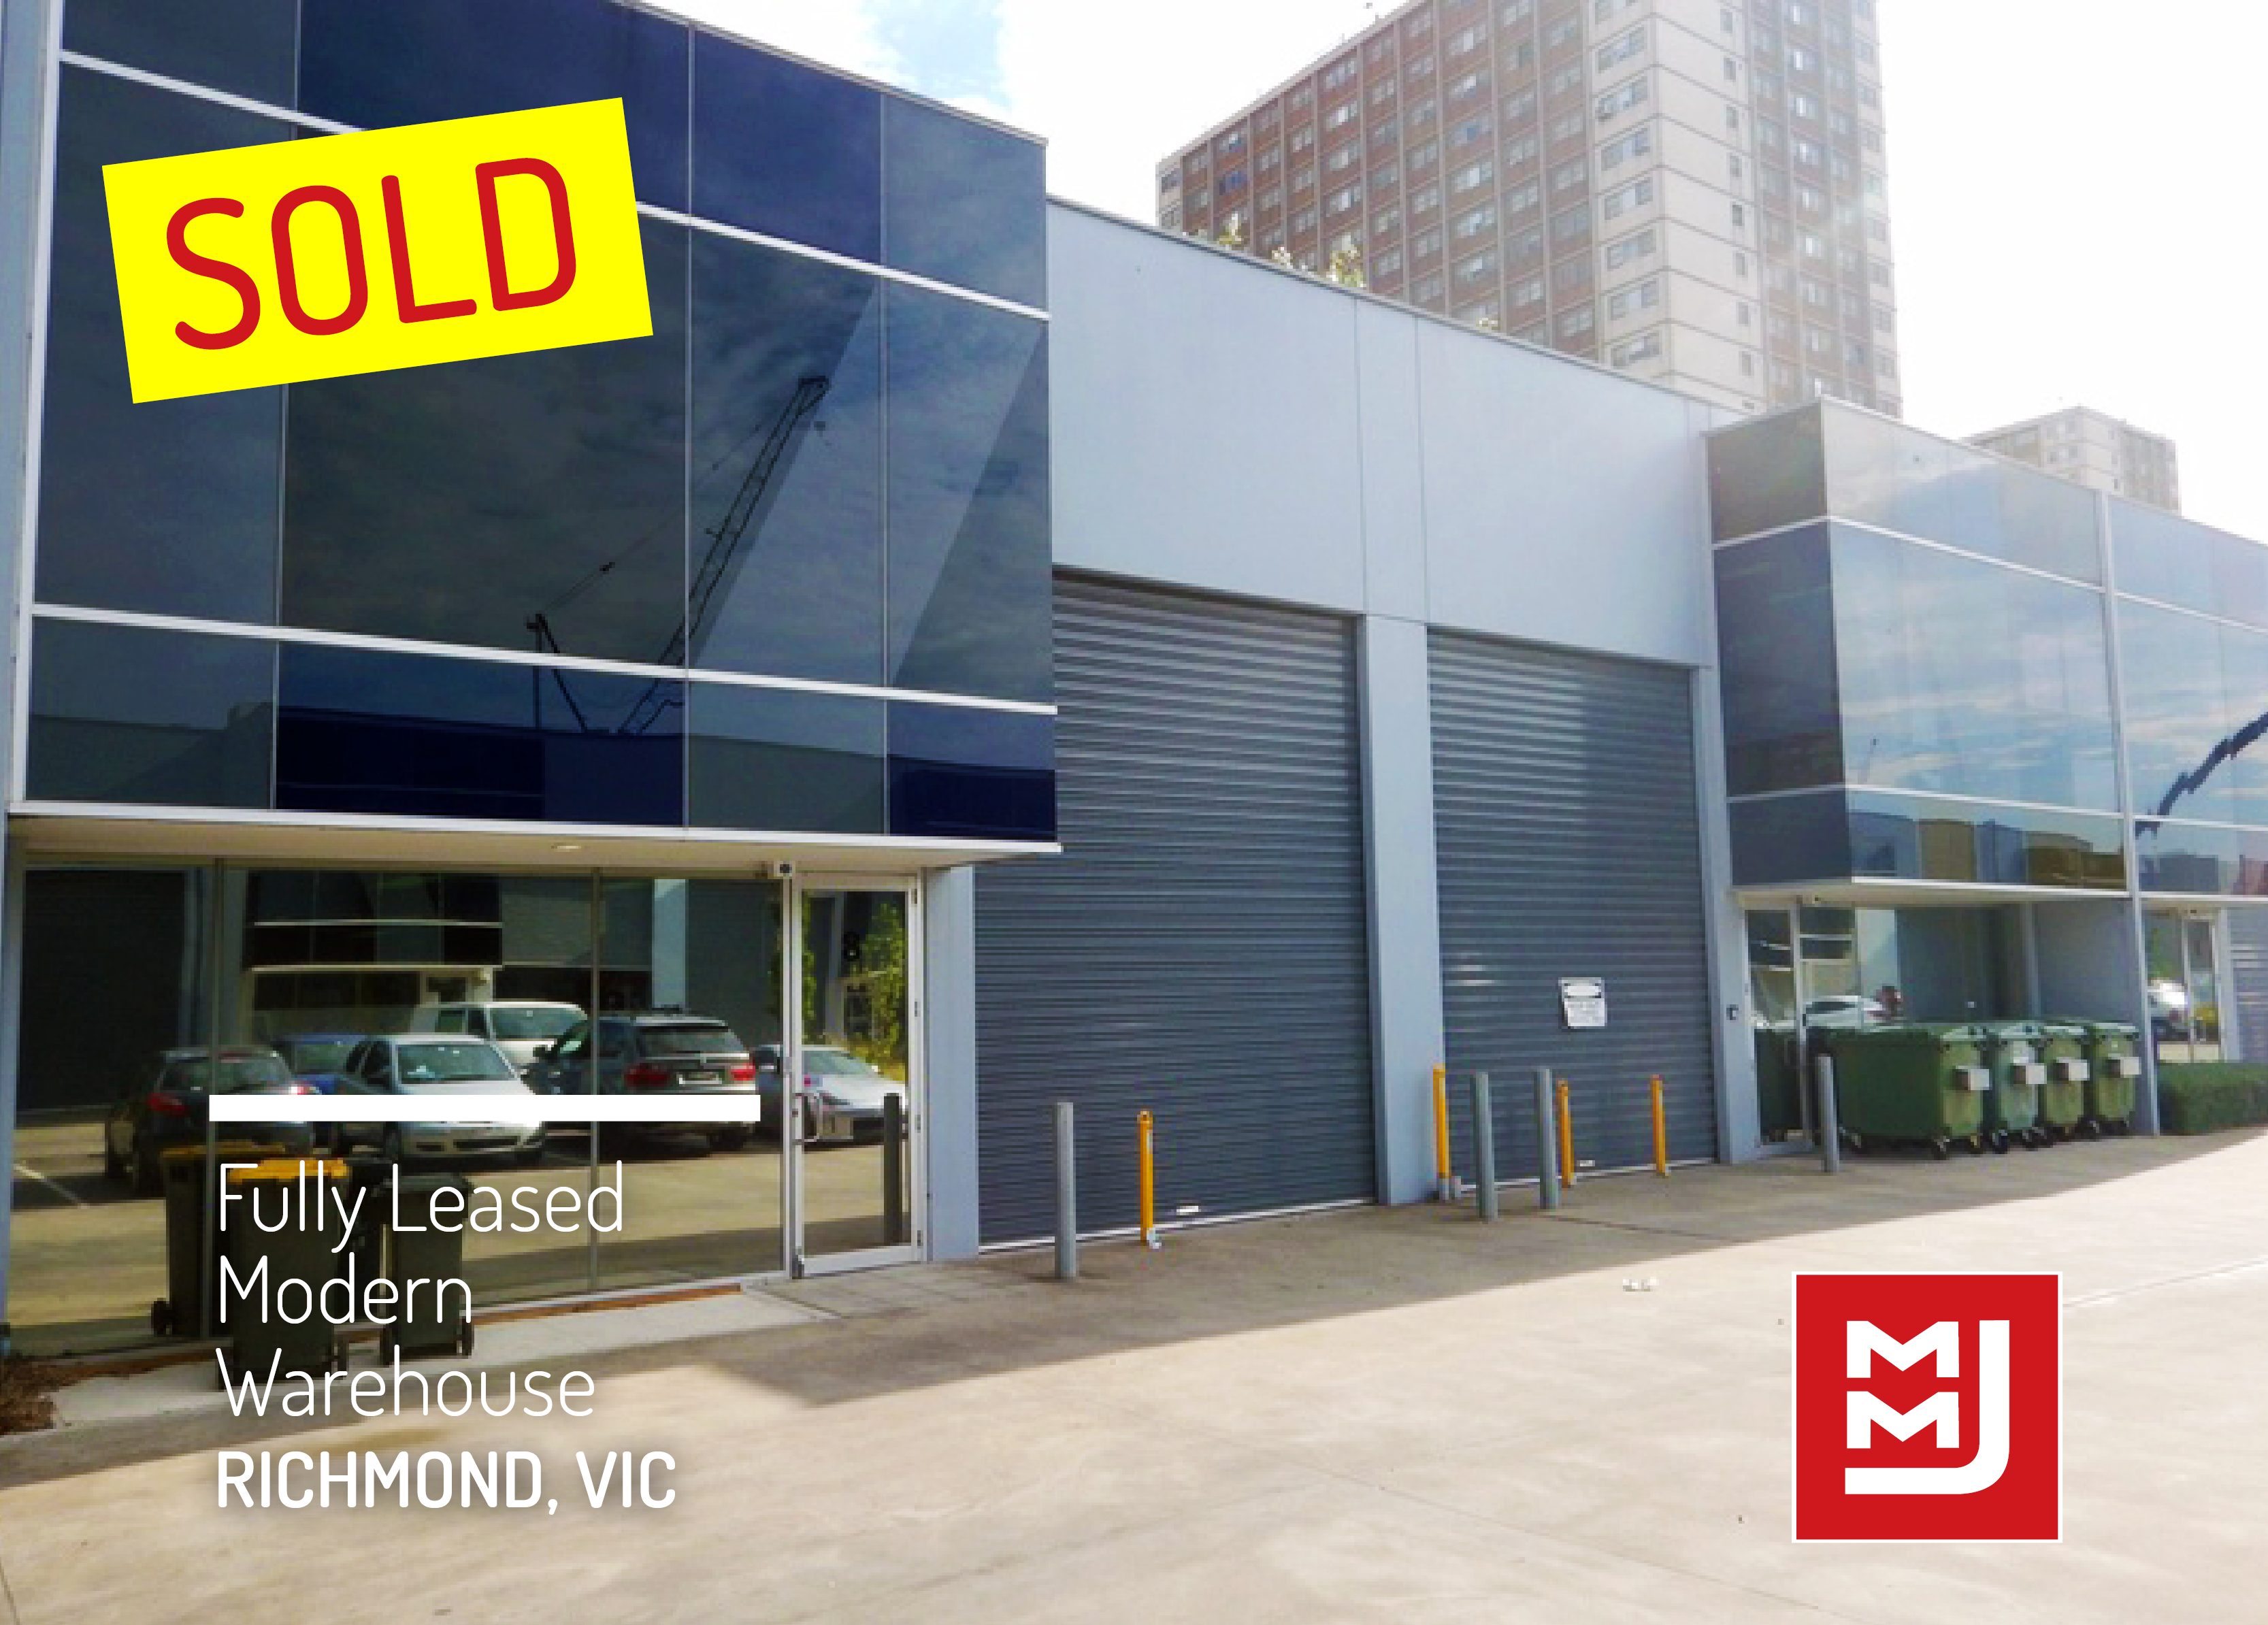 #SOLD - Savvy investor snaps up Richmond warehouse in just 7 days.